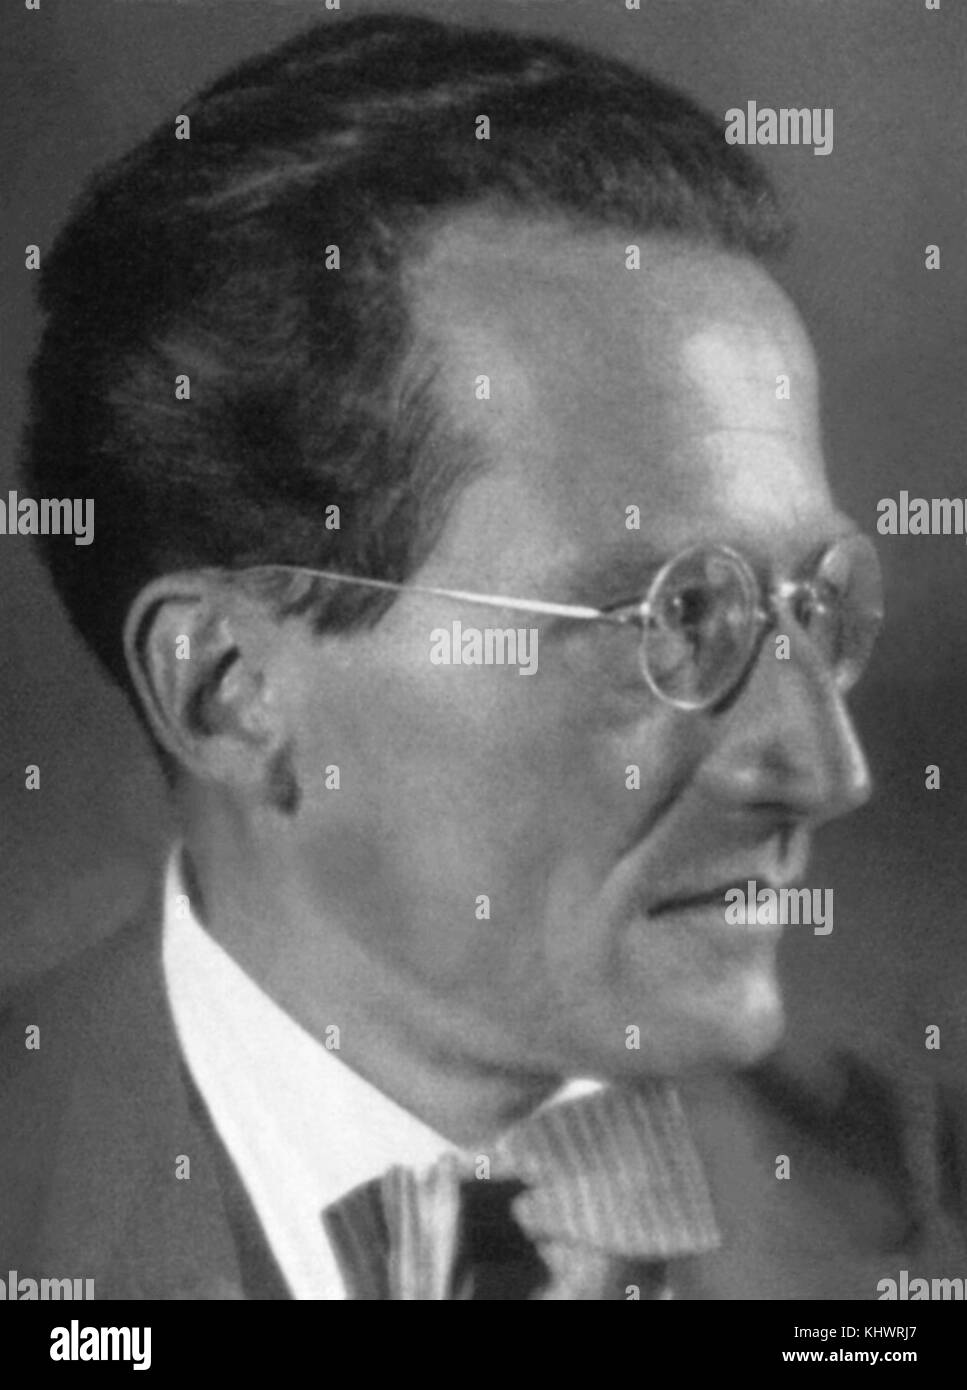 Dr. Erwin Schrödinger (1867-1961), Austrian physicist and winner of the Nobe Prize for Physics in 1933. Schrödinger - Stock Image